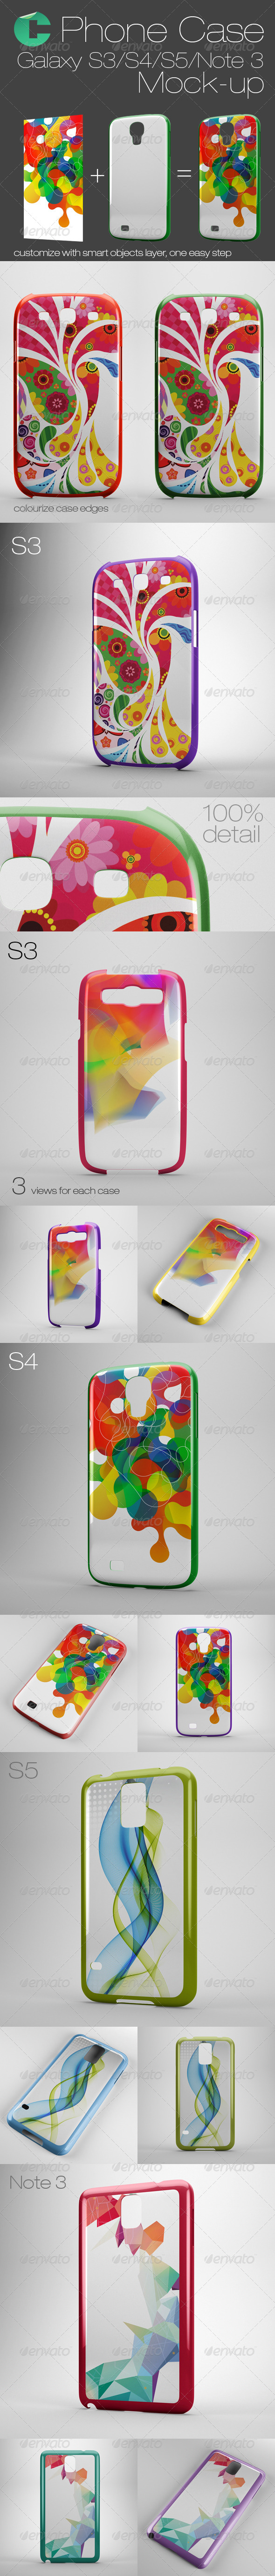 GraphicRiver Phone Case Mock Up Galaxy S3 S4 S5 Note 3 8005778